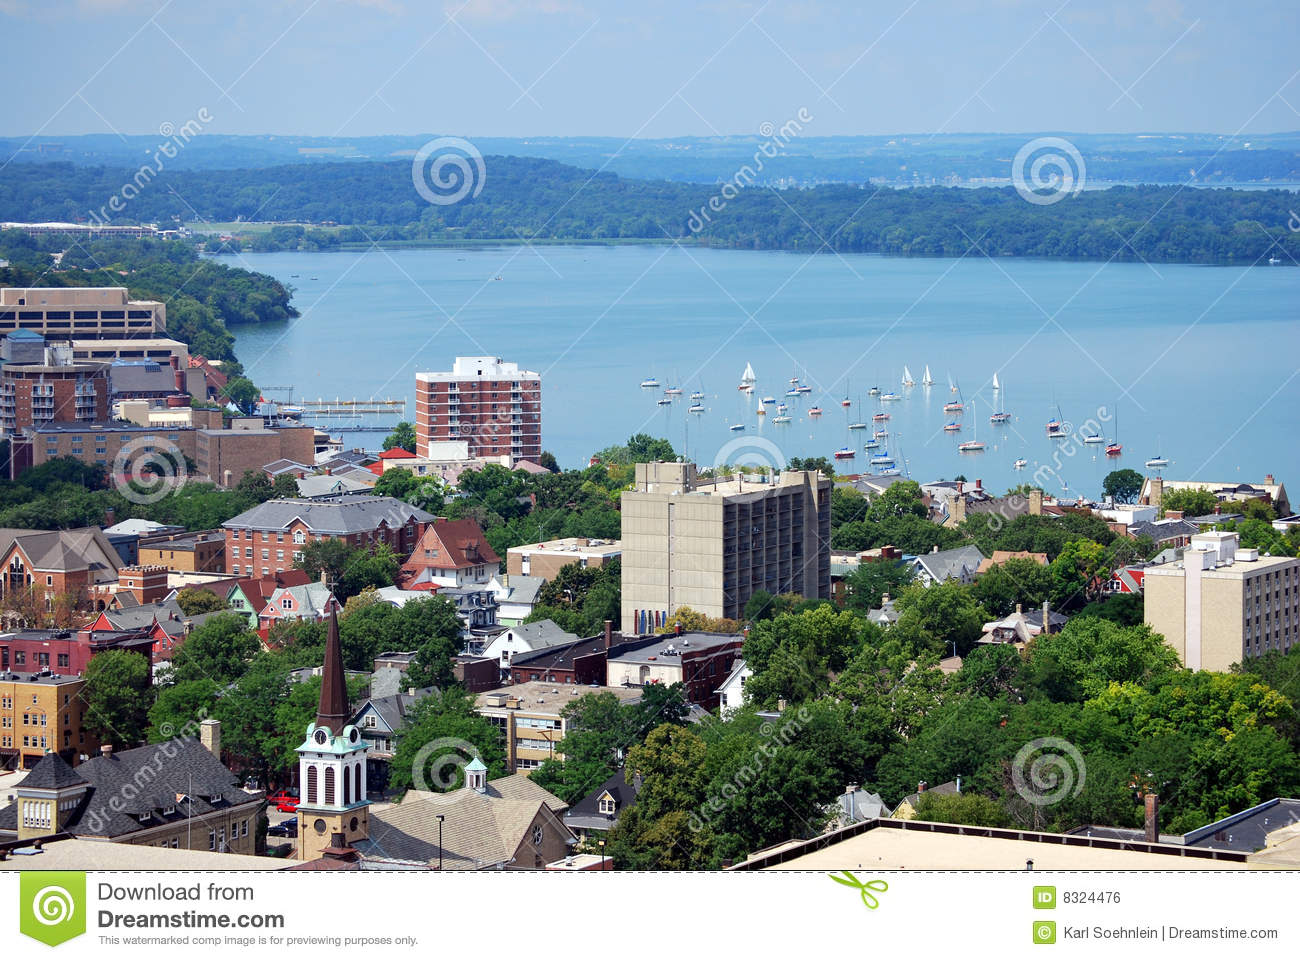 Downtown madison wisconsin royalty free stock image for Mendota terrace madison wi